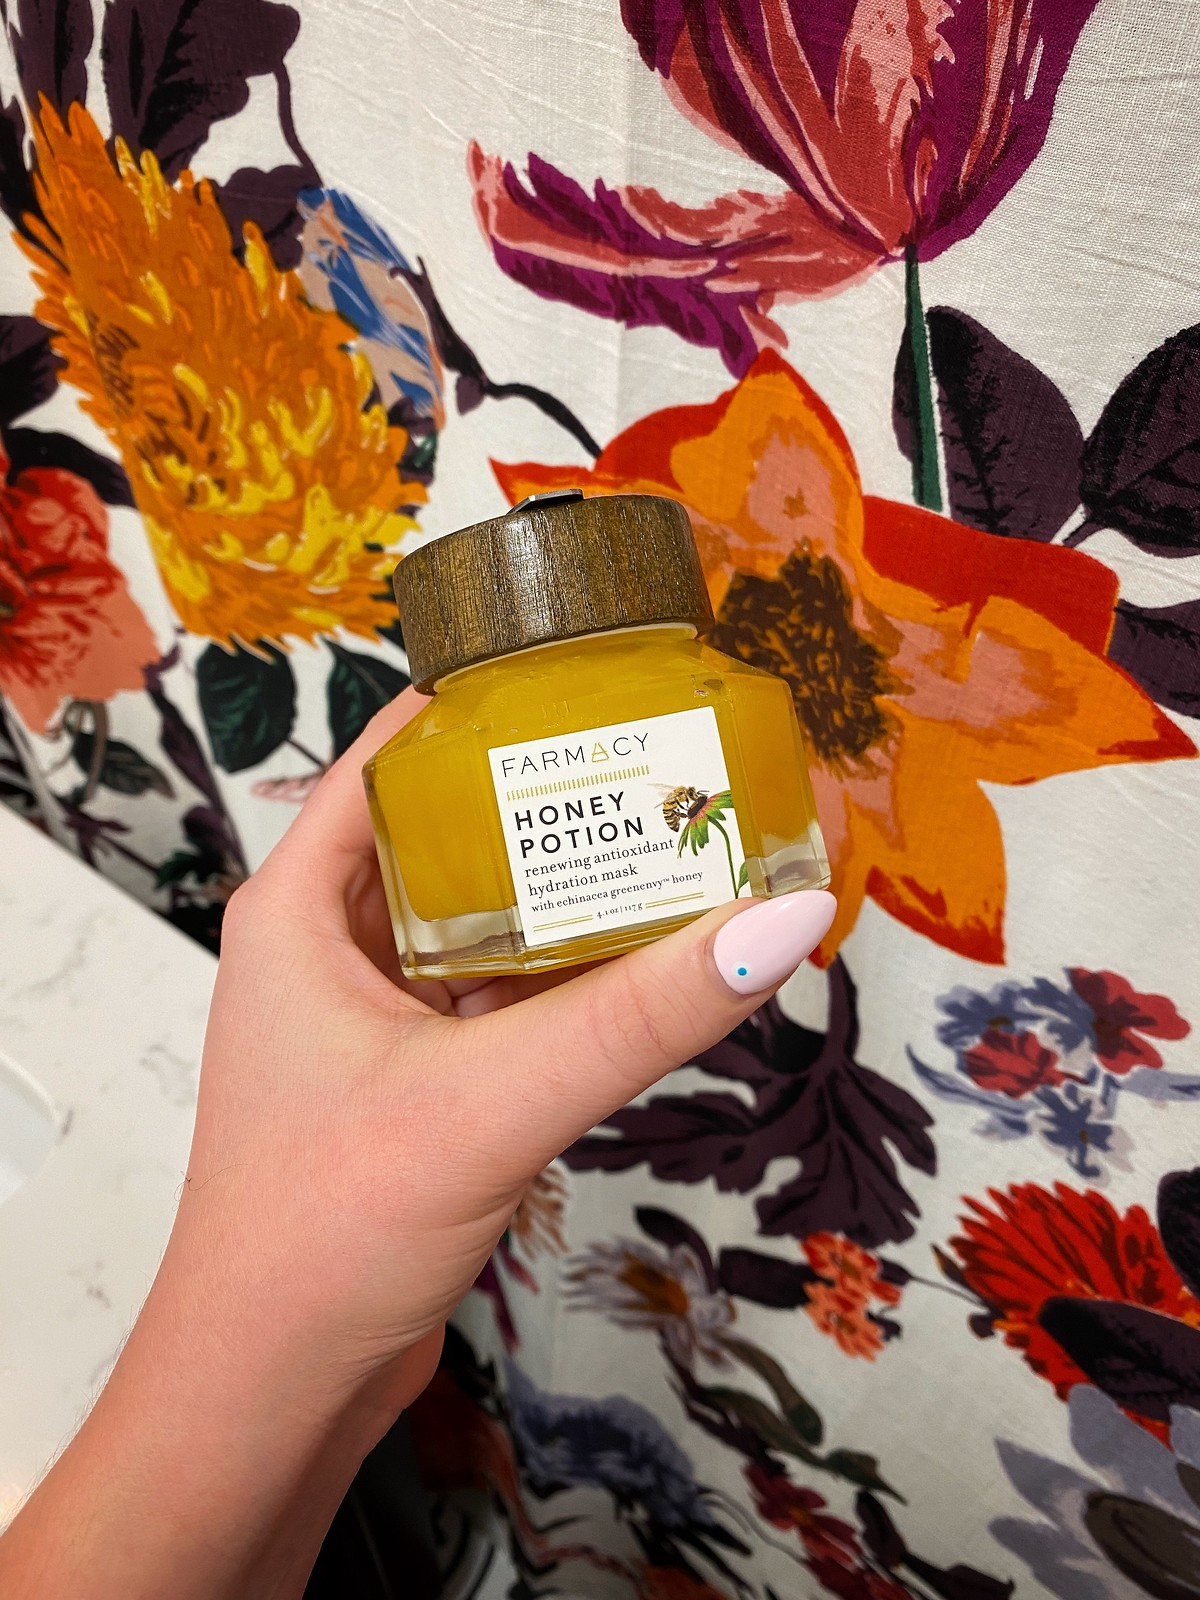 farmacy Honey Potion Renewing Antioxidant Hydration Mask Clean Beauty